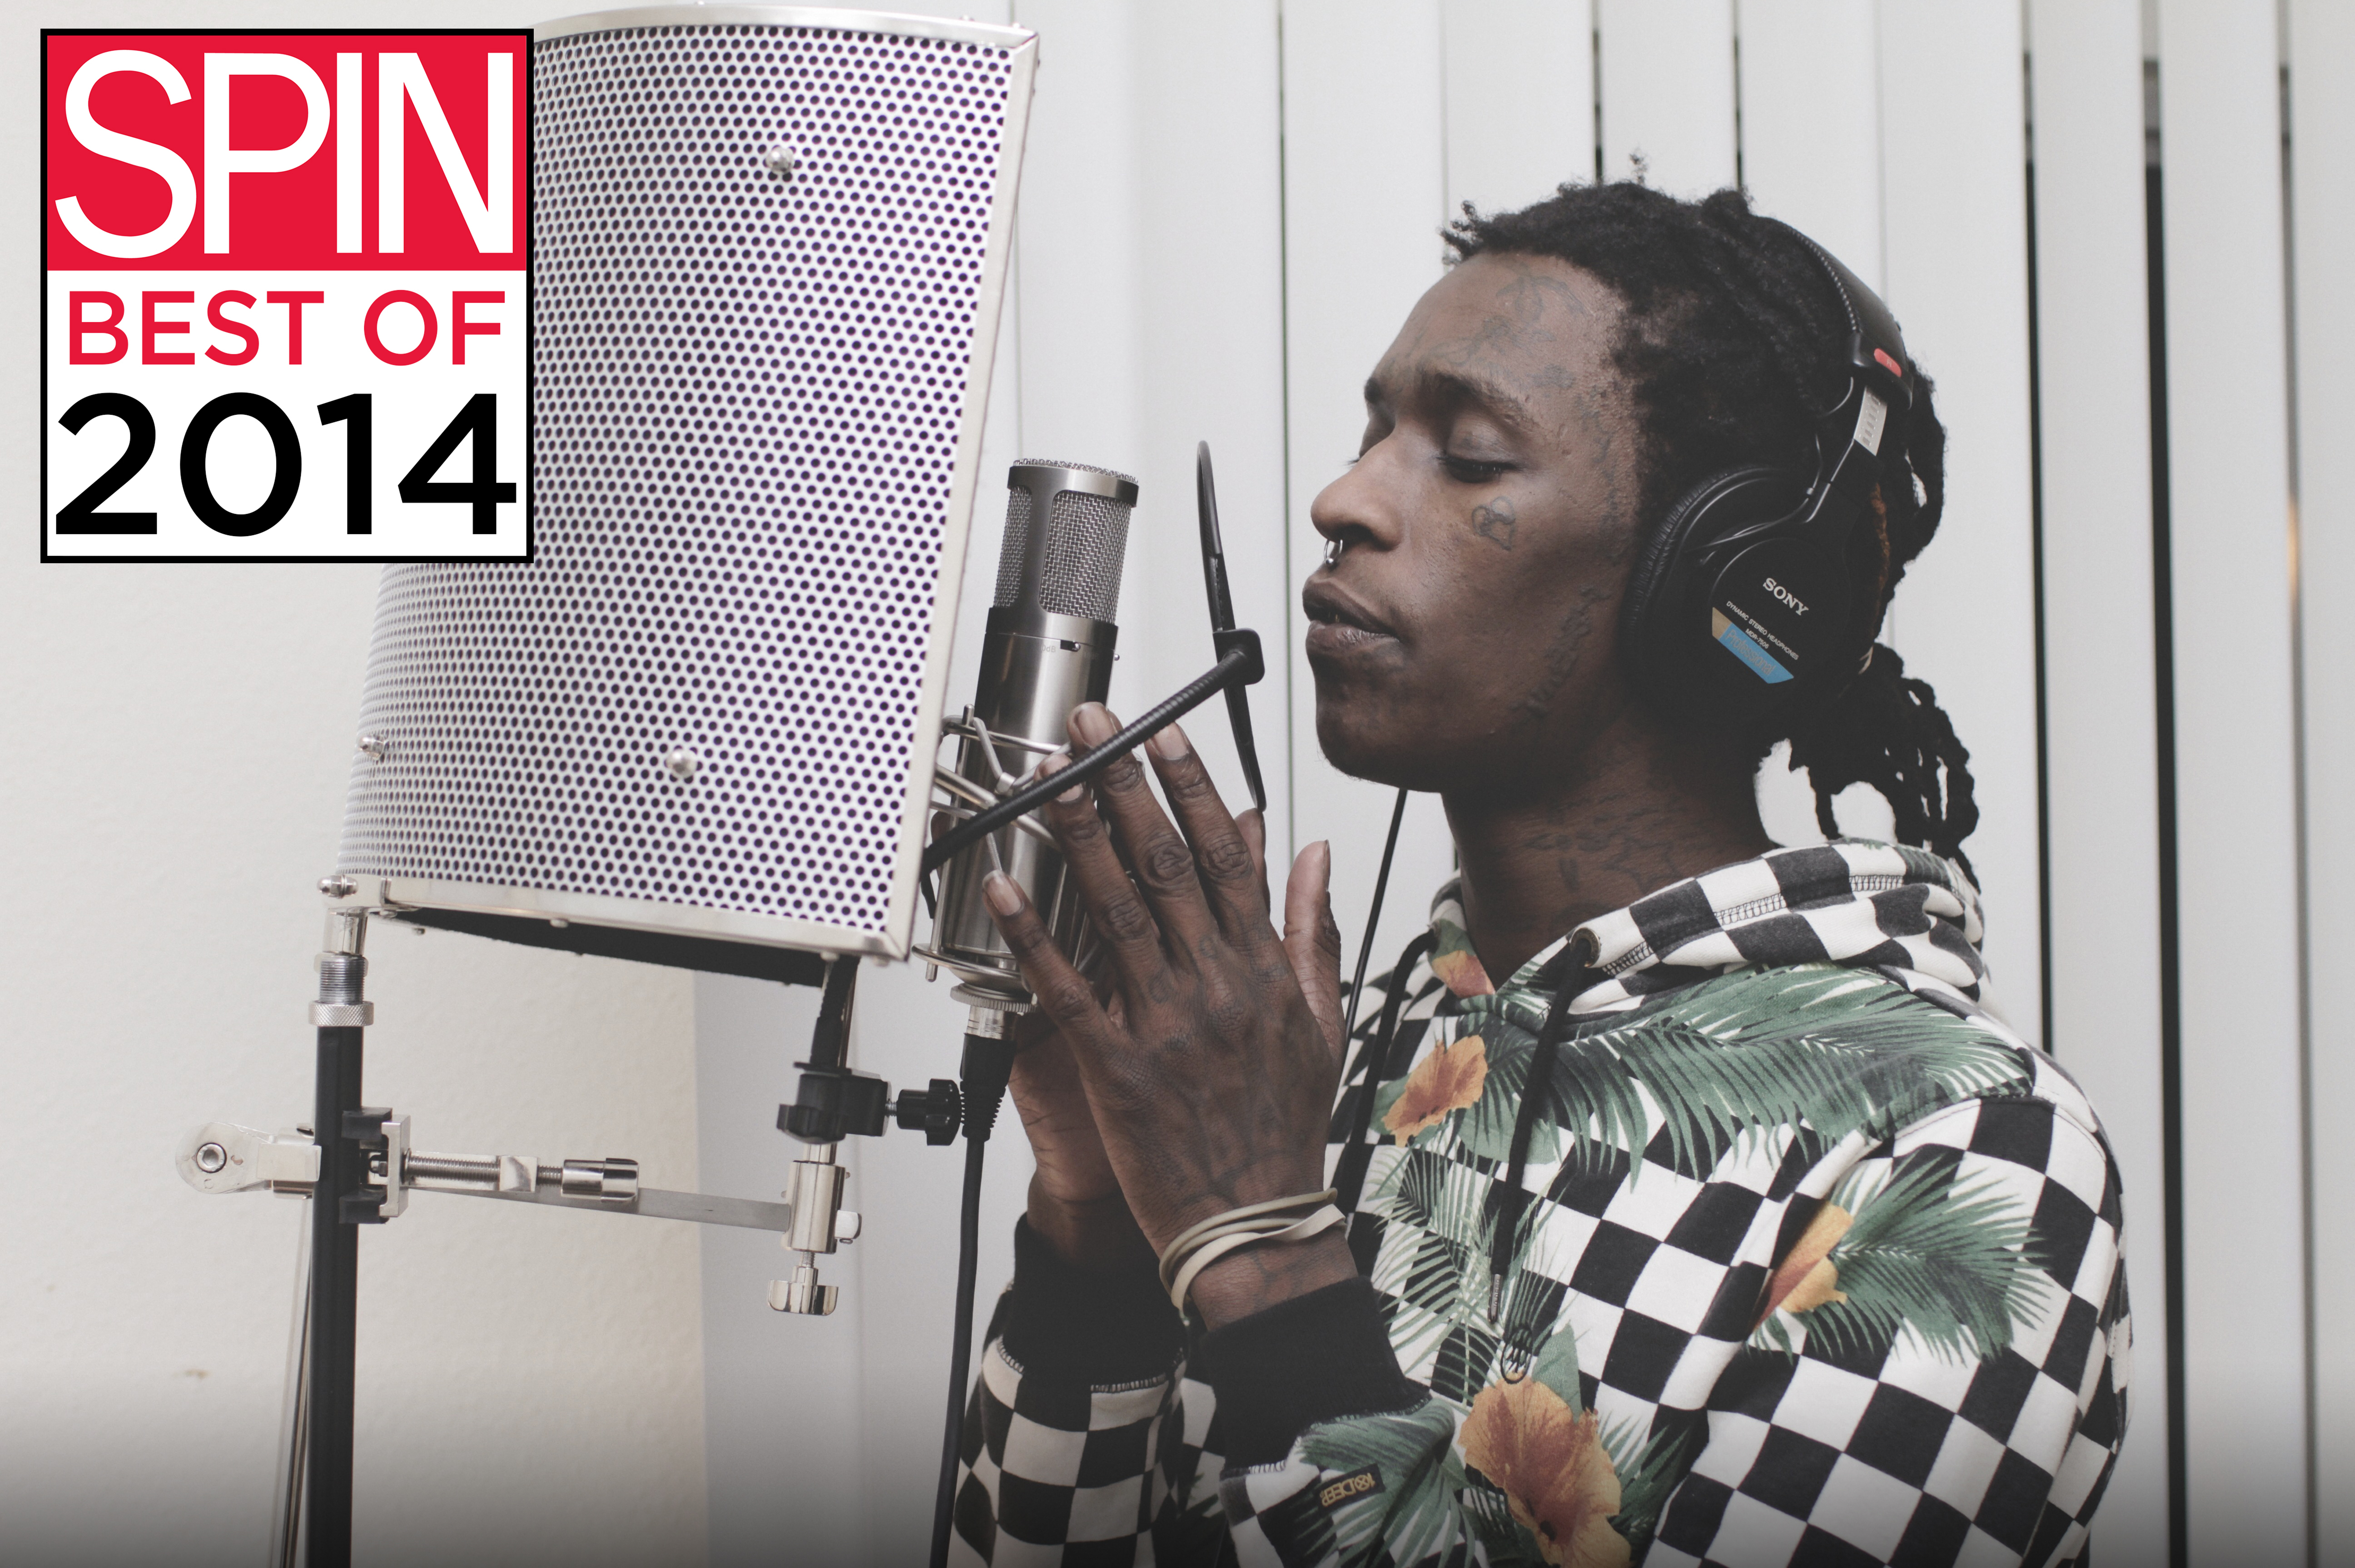 Young Thug Is SPIN's 2014 Rapper of the Year